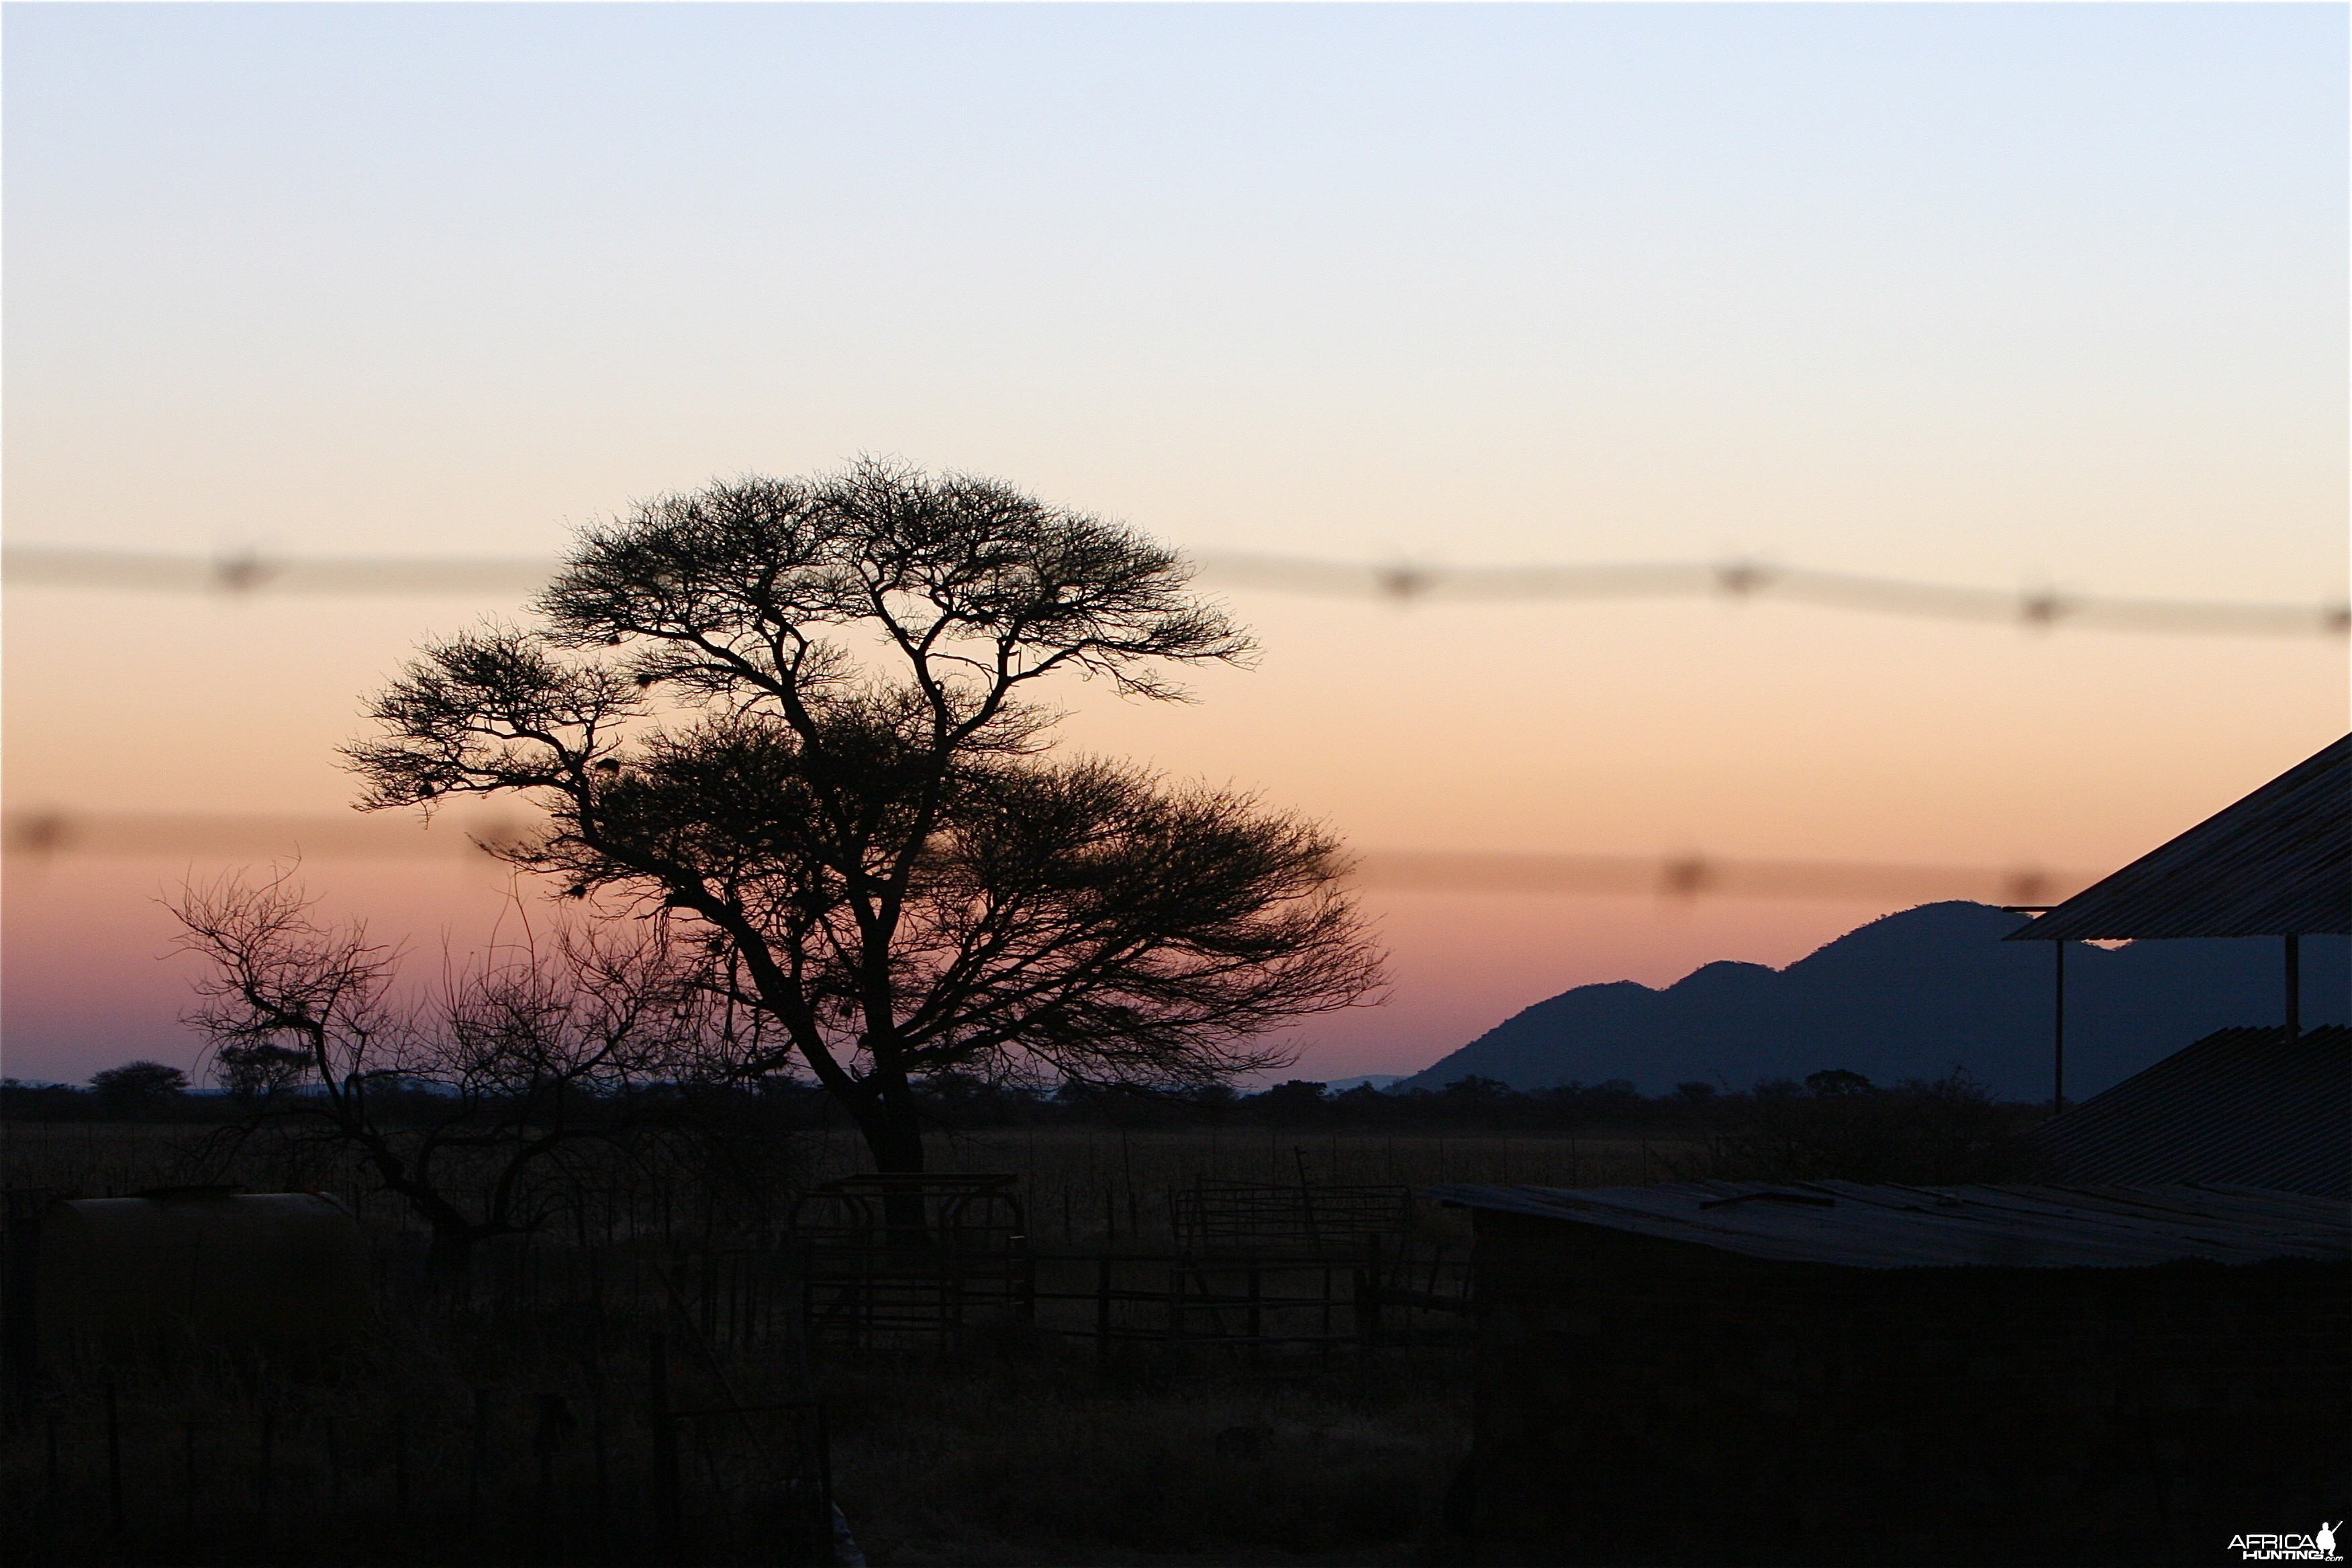 My first Namibian Sunset